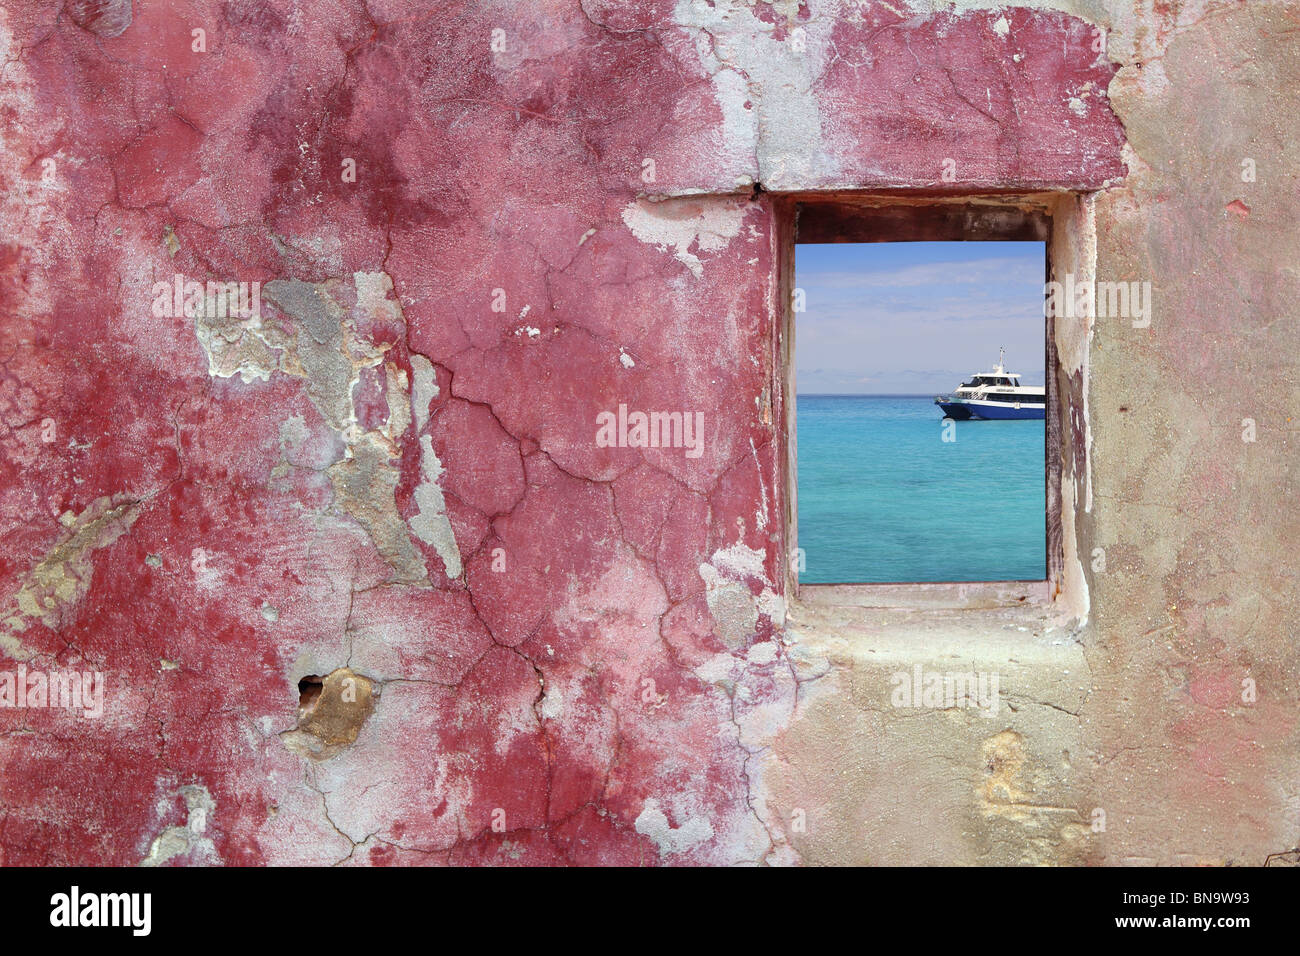 grunge pink red wall wood window tropical turquoise sea boat view - Stock Image